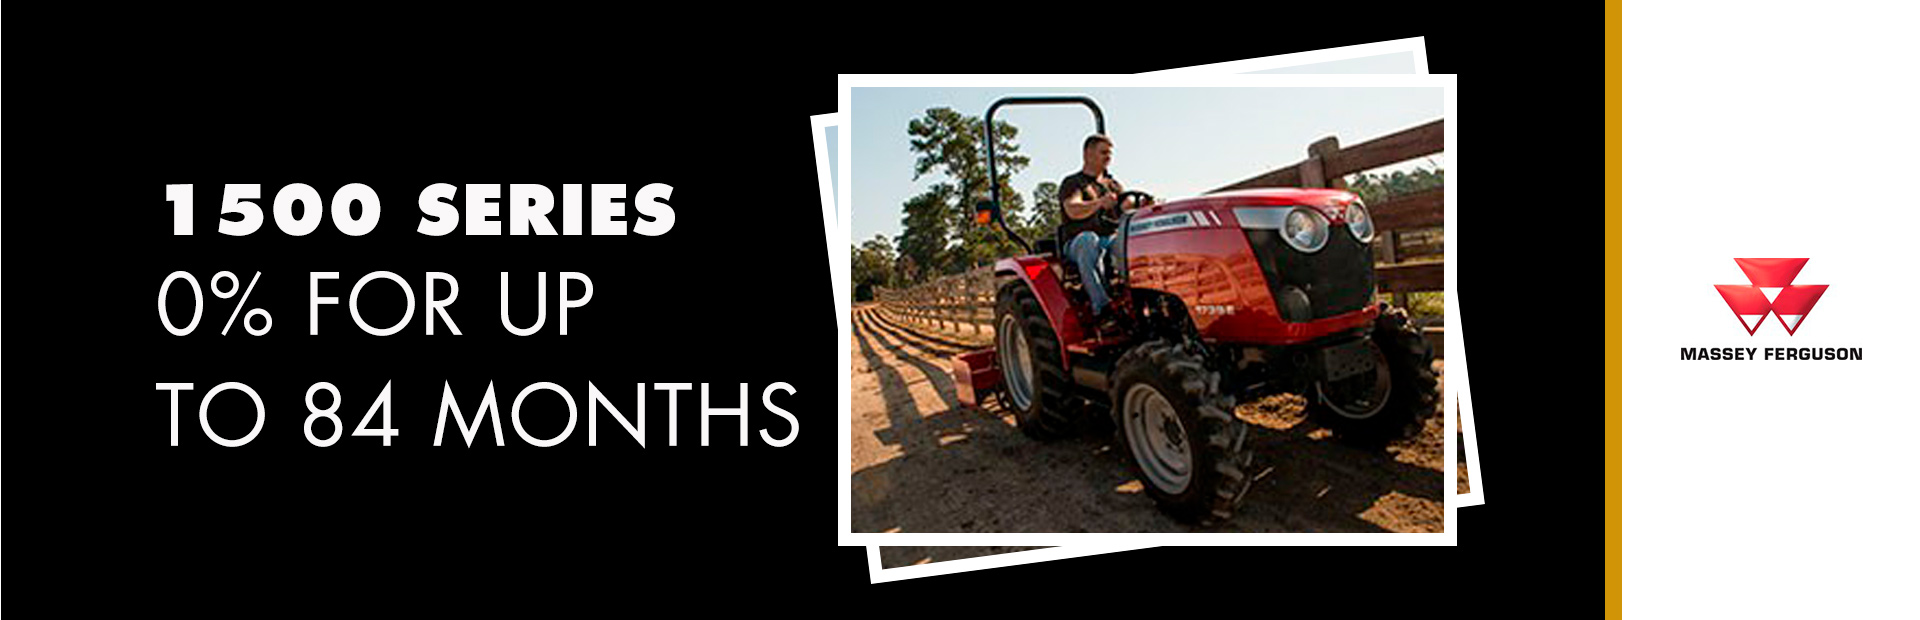 Massey Ferguson: 1500 Series Compact Tract - 0% for up to 84 Months